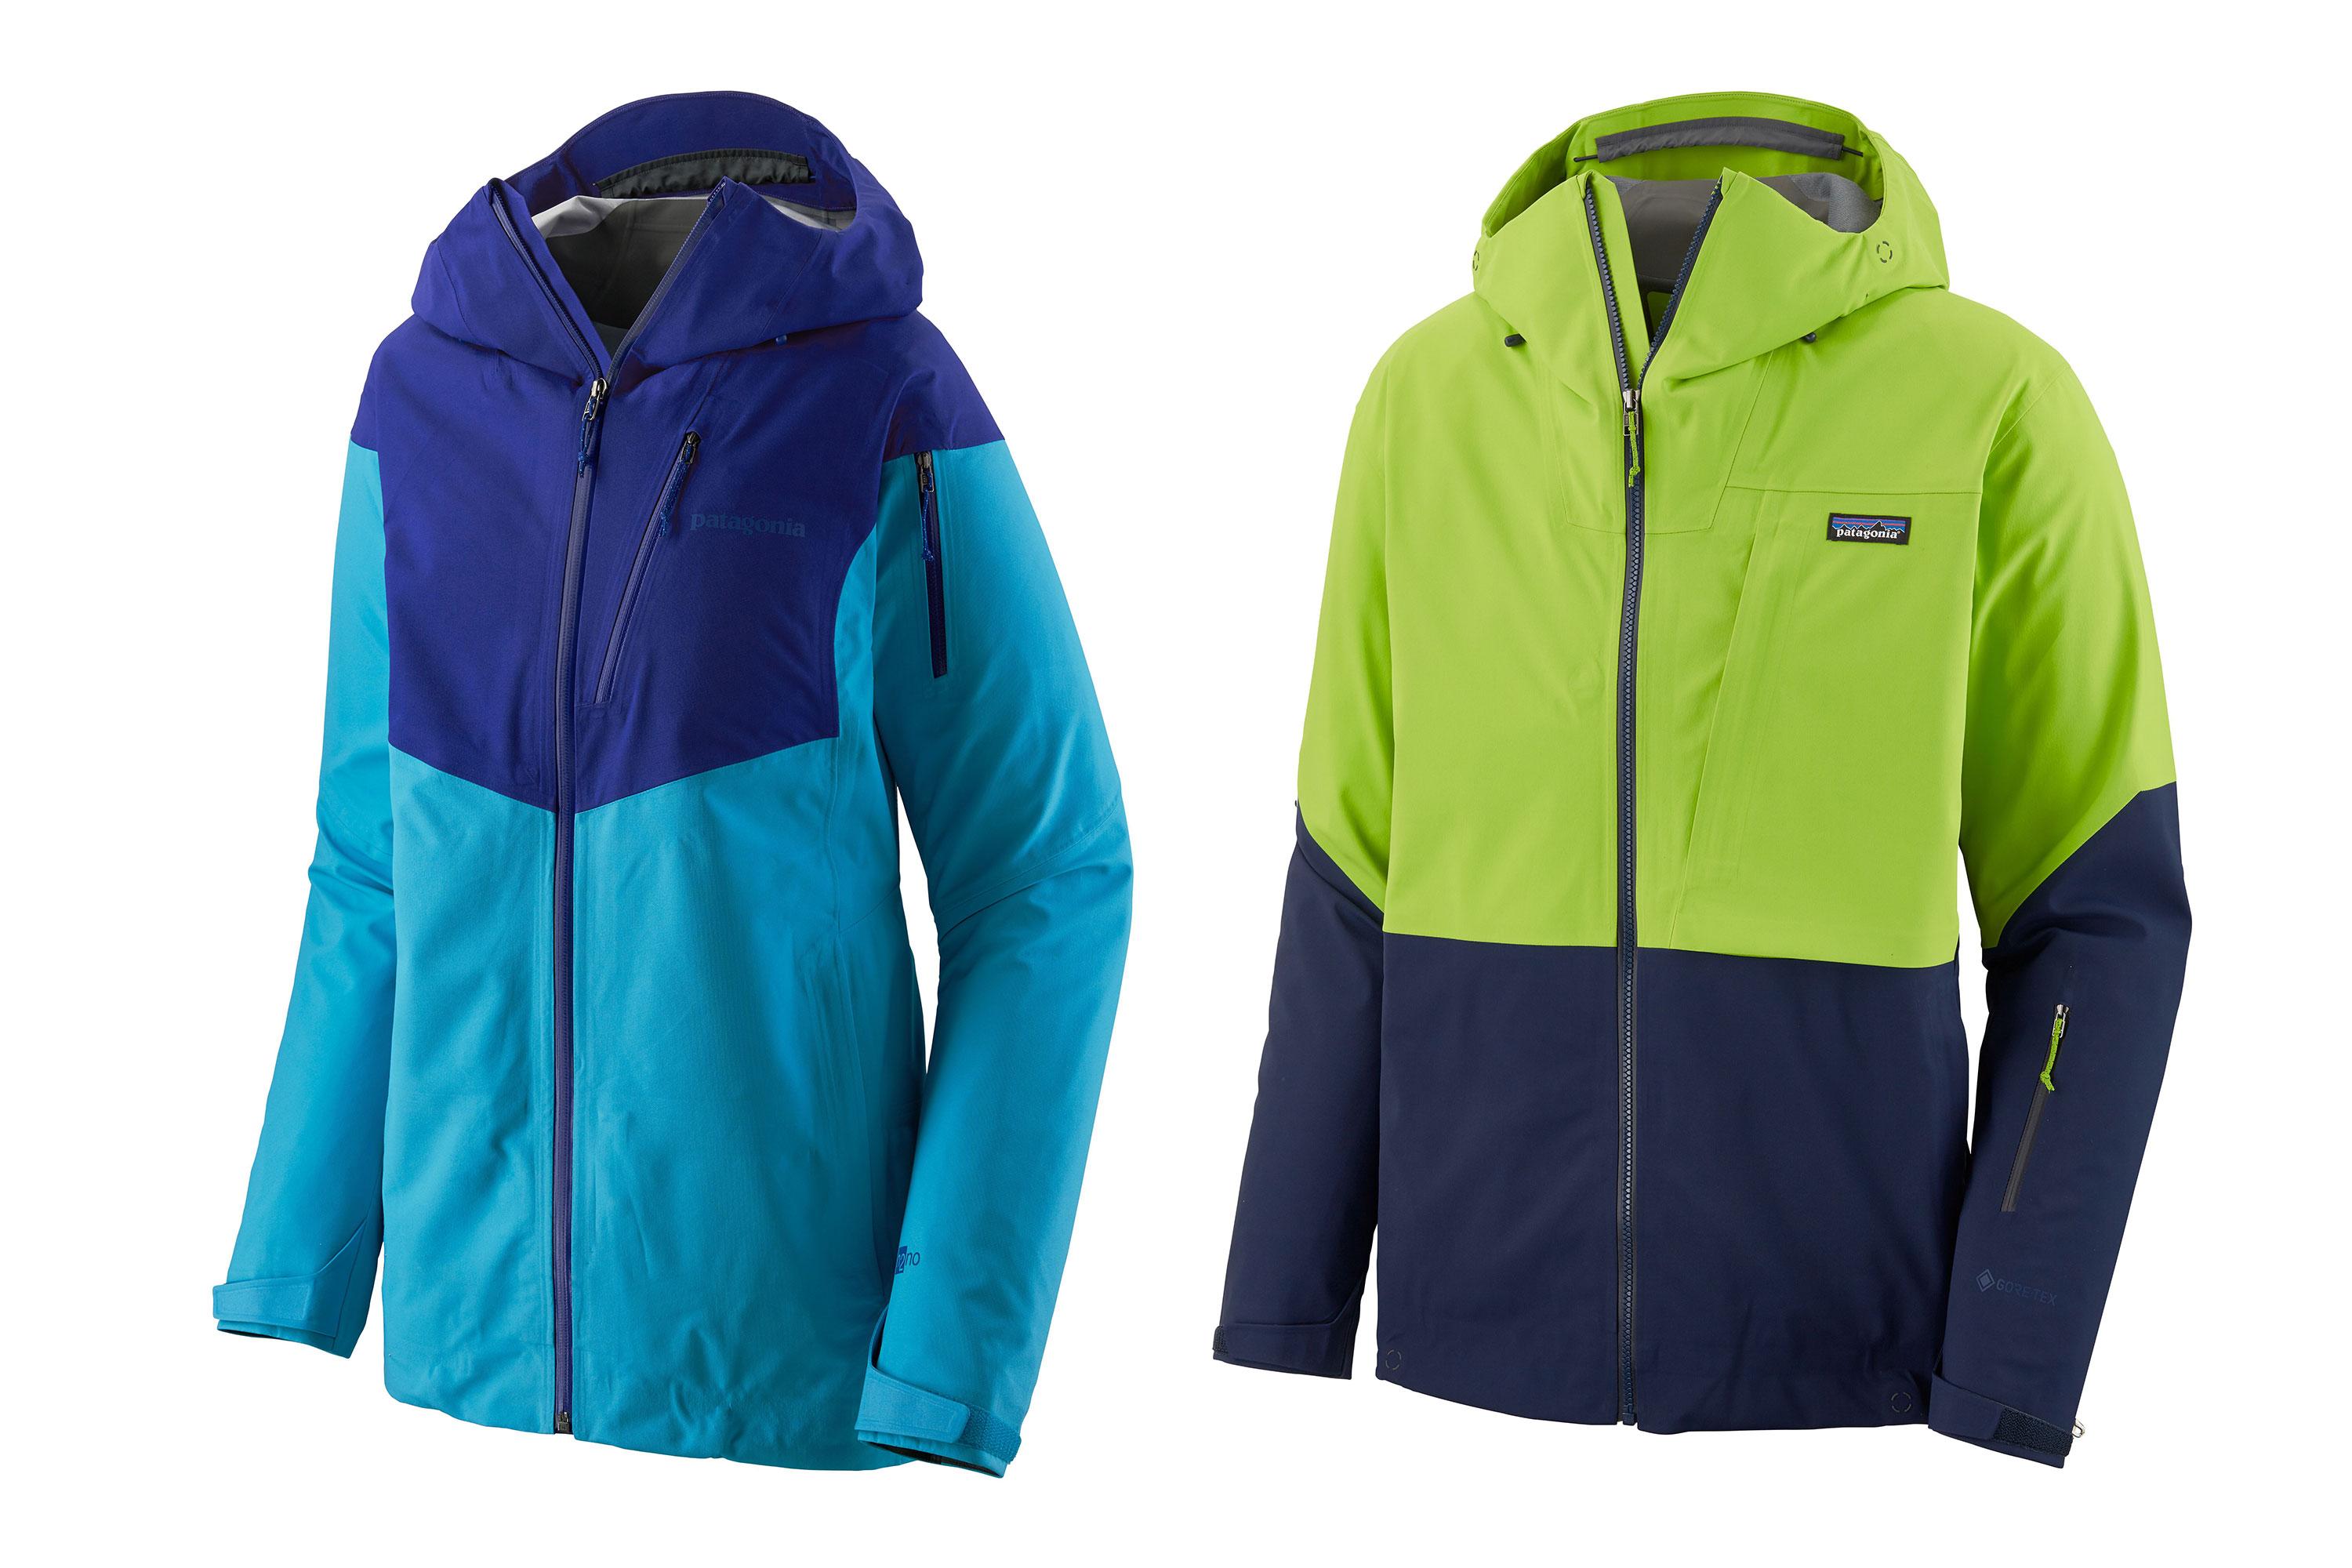 Patagonia recycled fair trade waterproof shells